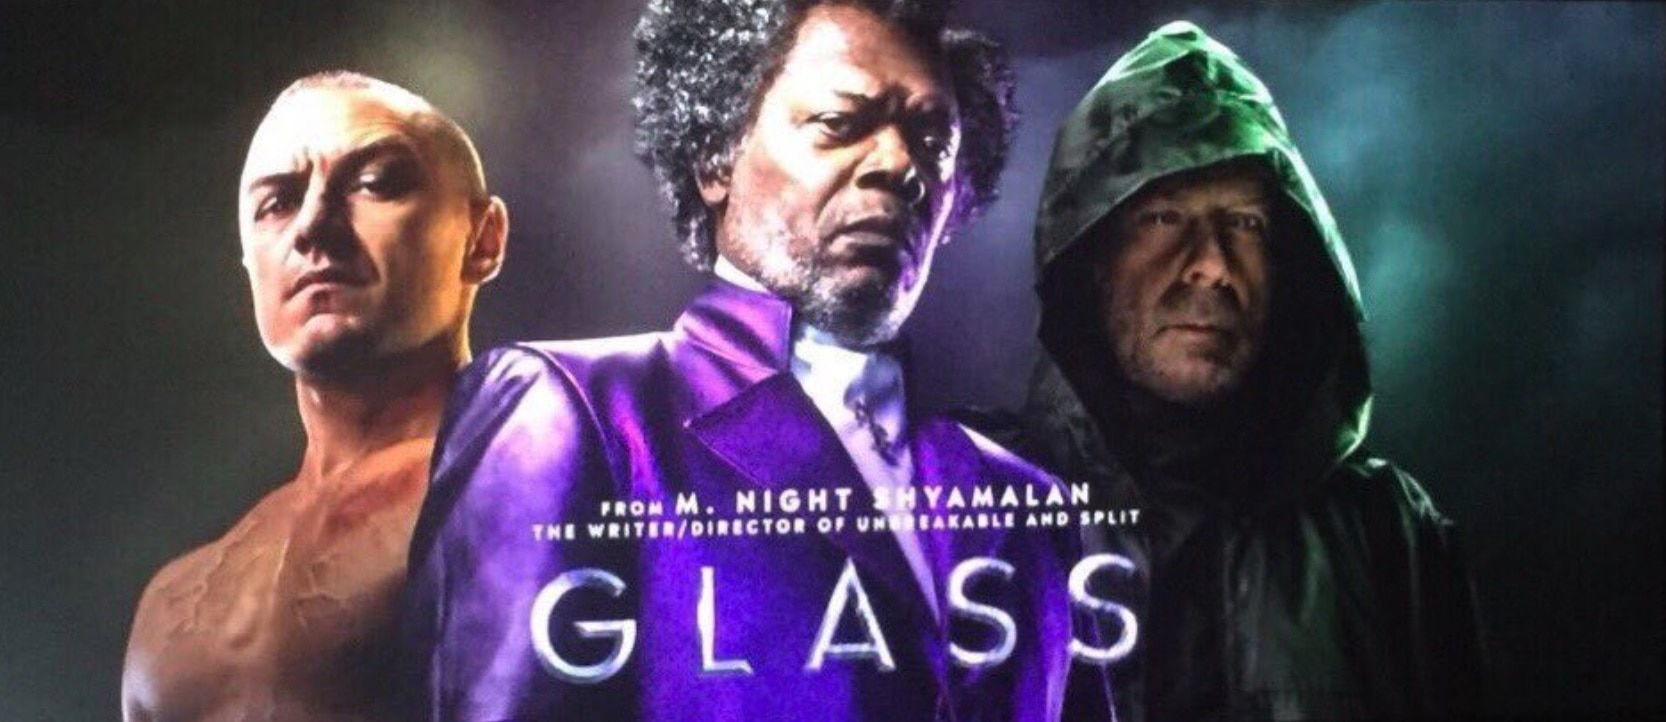 Glass Poster - SDCC 2018: Blumhouse Brings GLASS and HALLOWEEN to Hall H